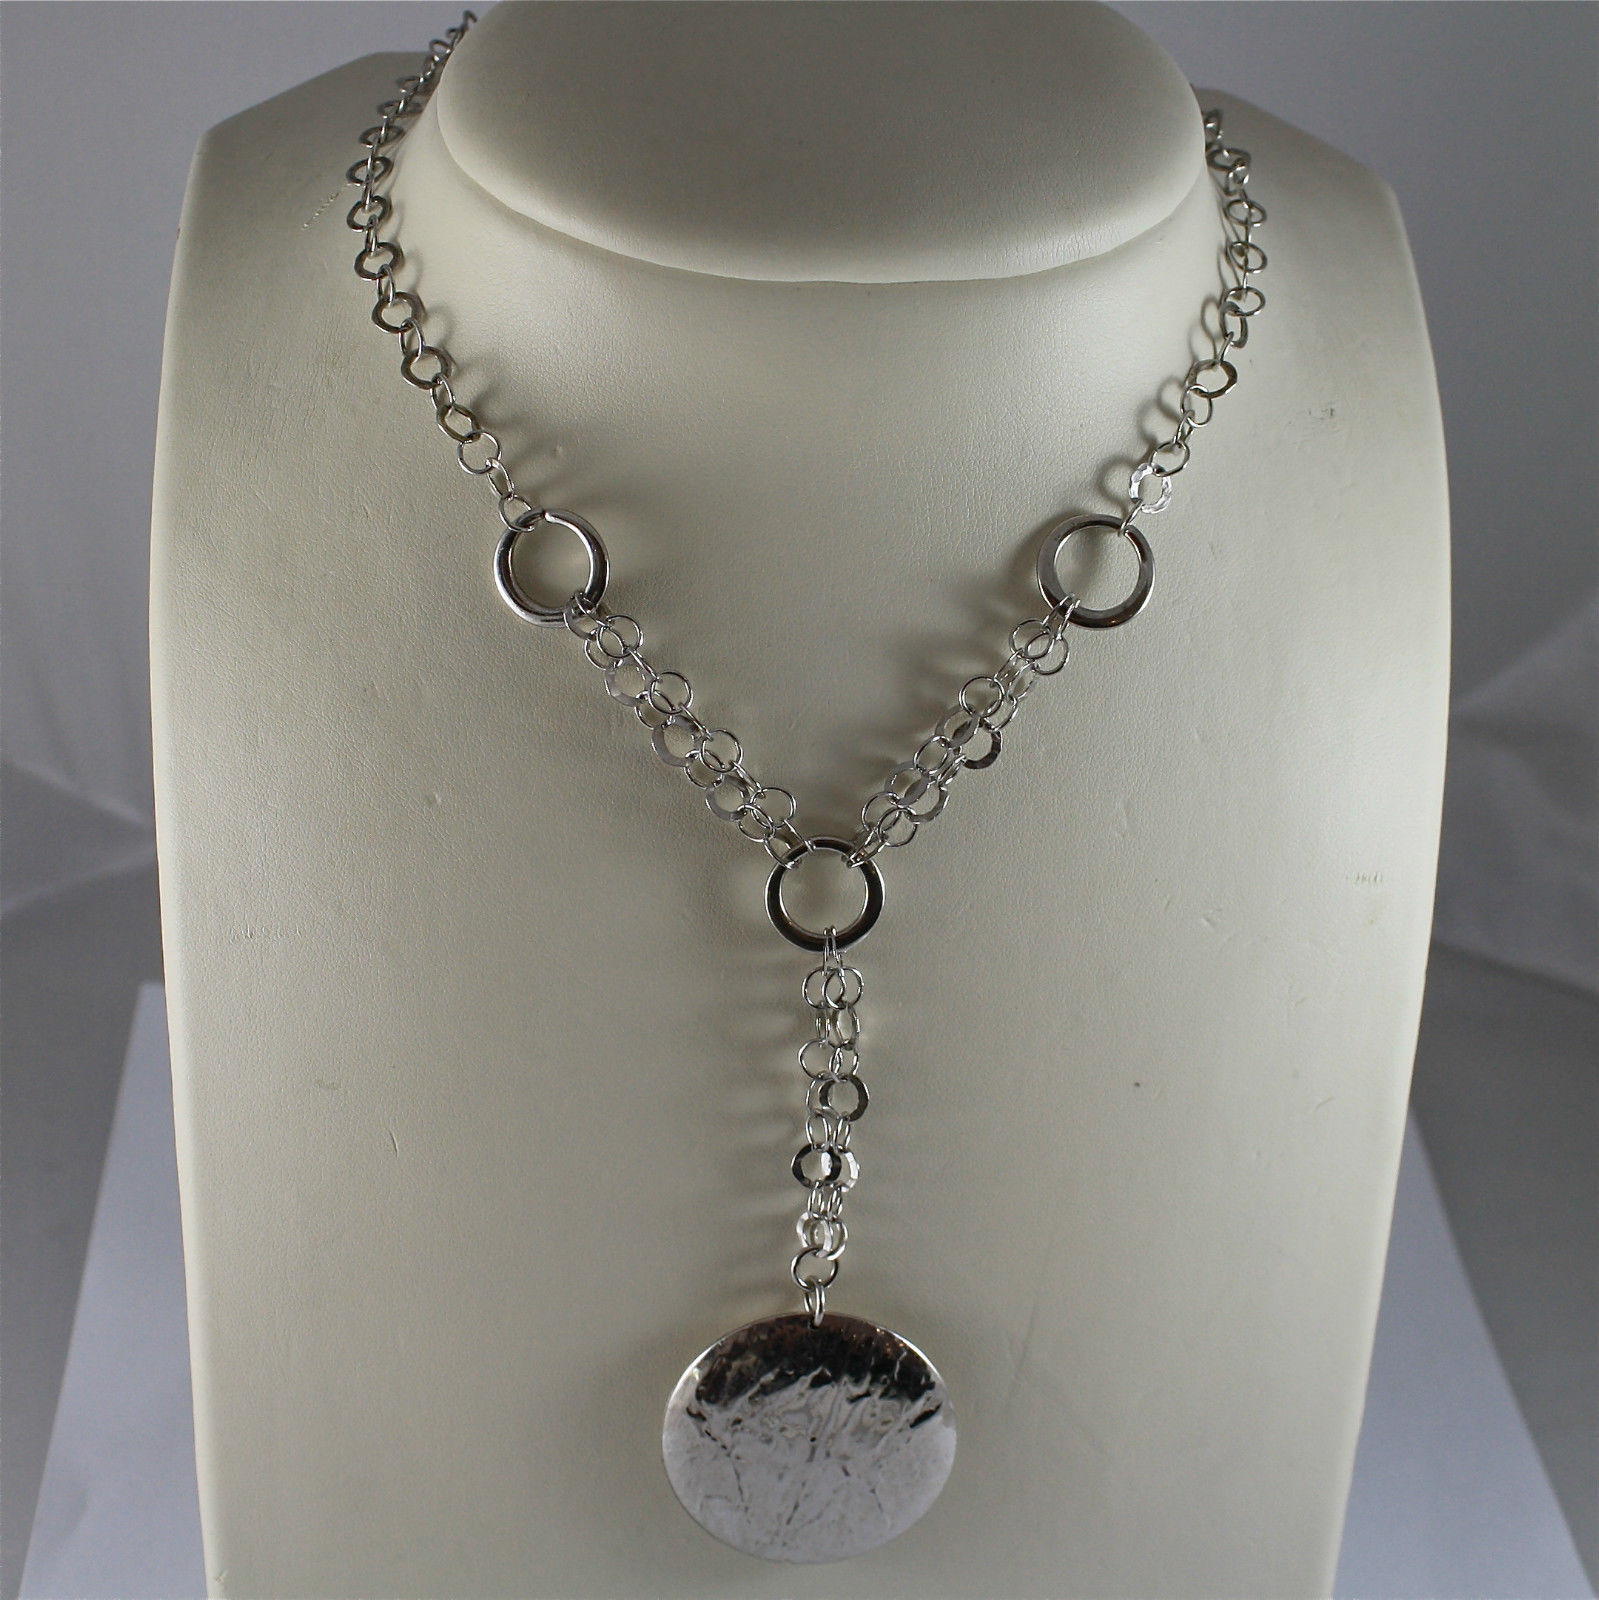 .925 RHODIUM SILVER NECKLACE, SCARF, RAW ROUND MESH,  HAMMERED WORKED DISC.